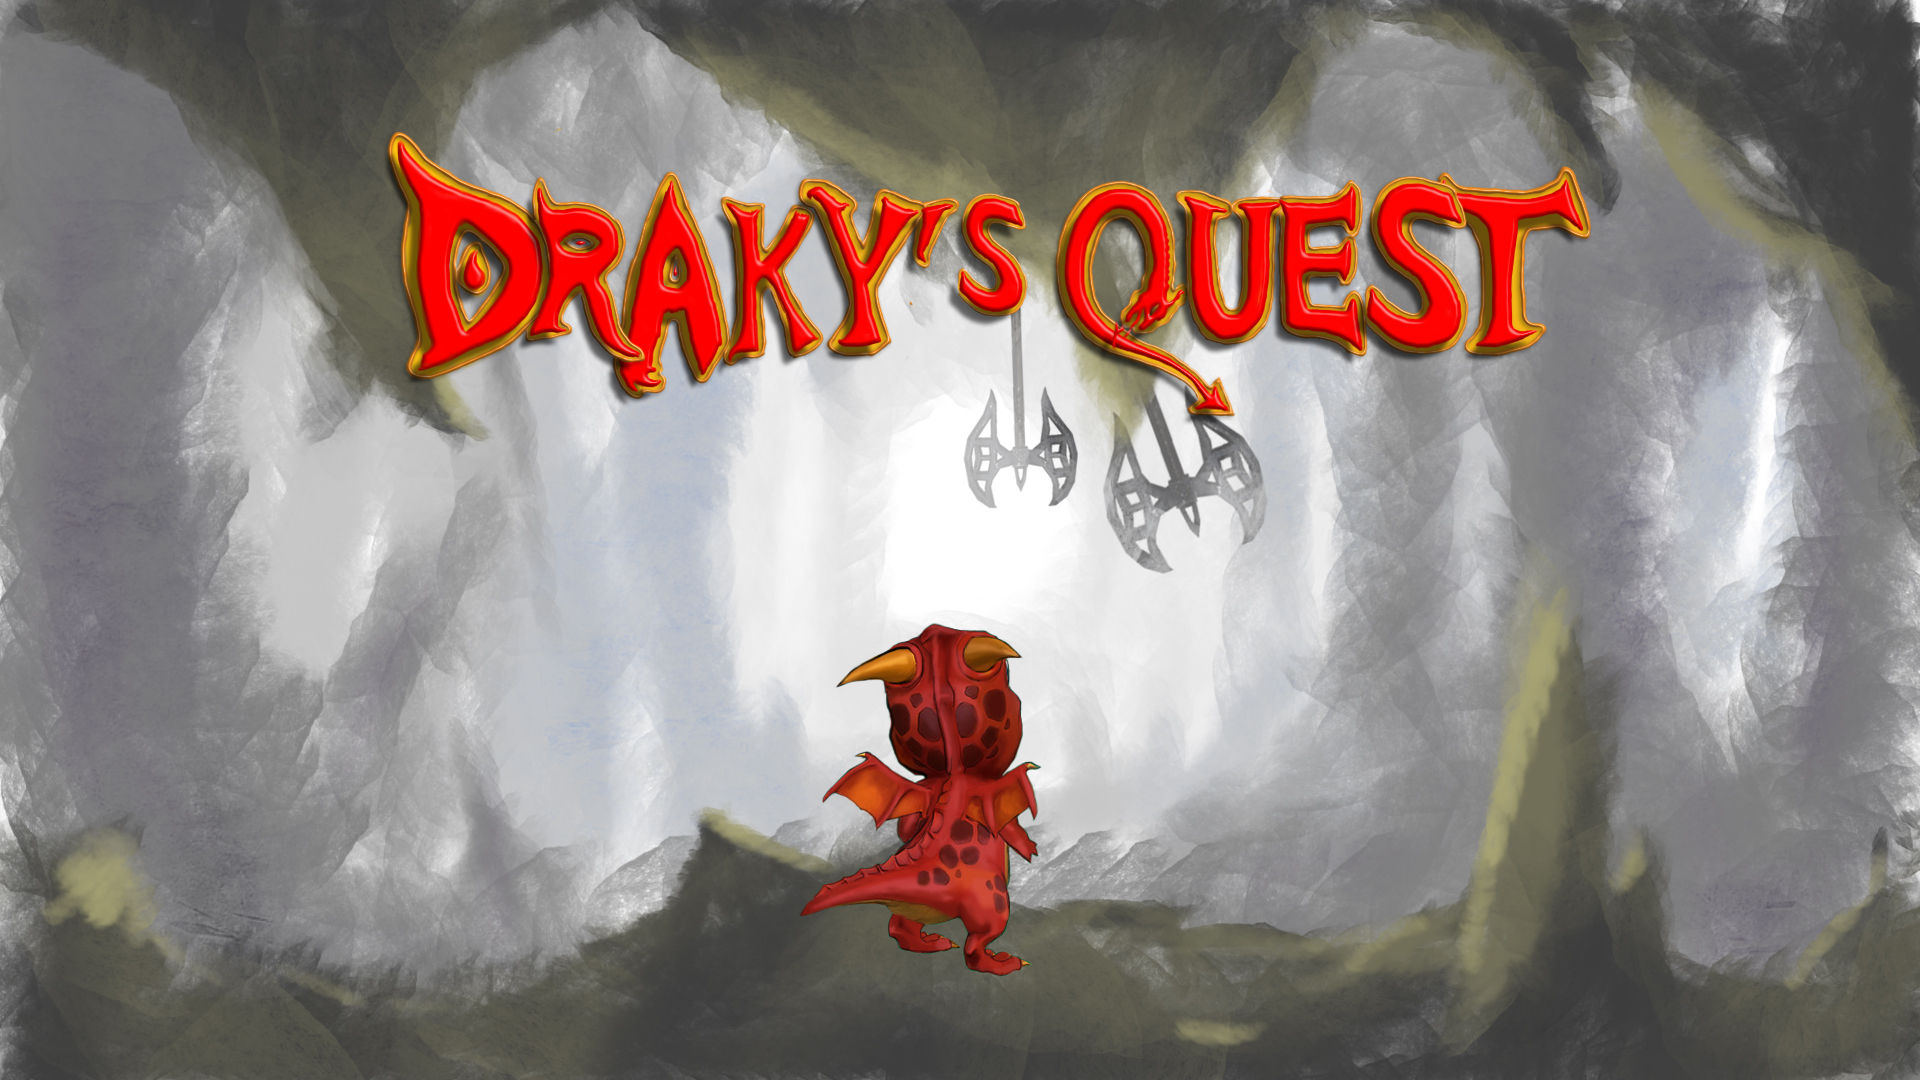 Draky's Quest